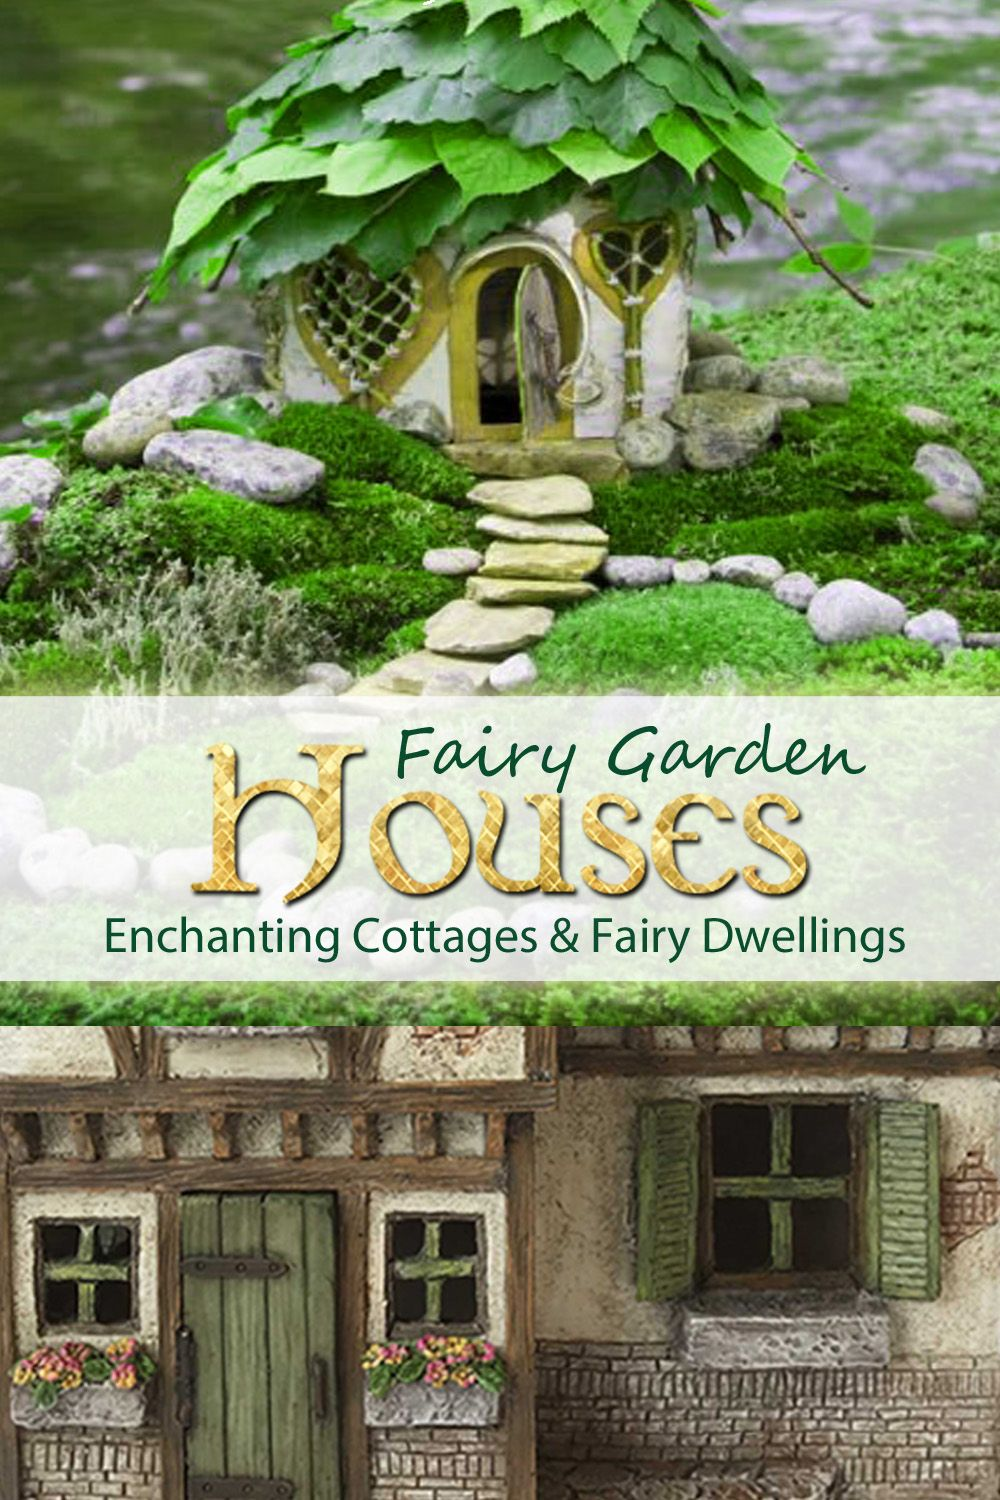 I share with you my favorite fairy garden supplies